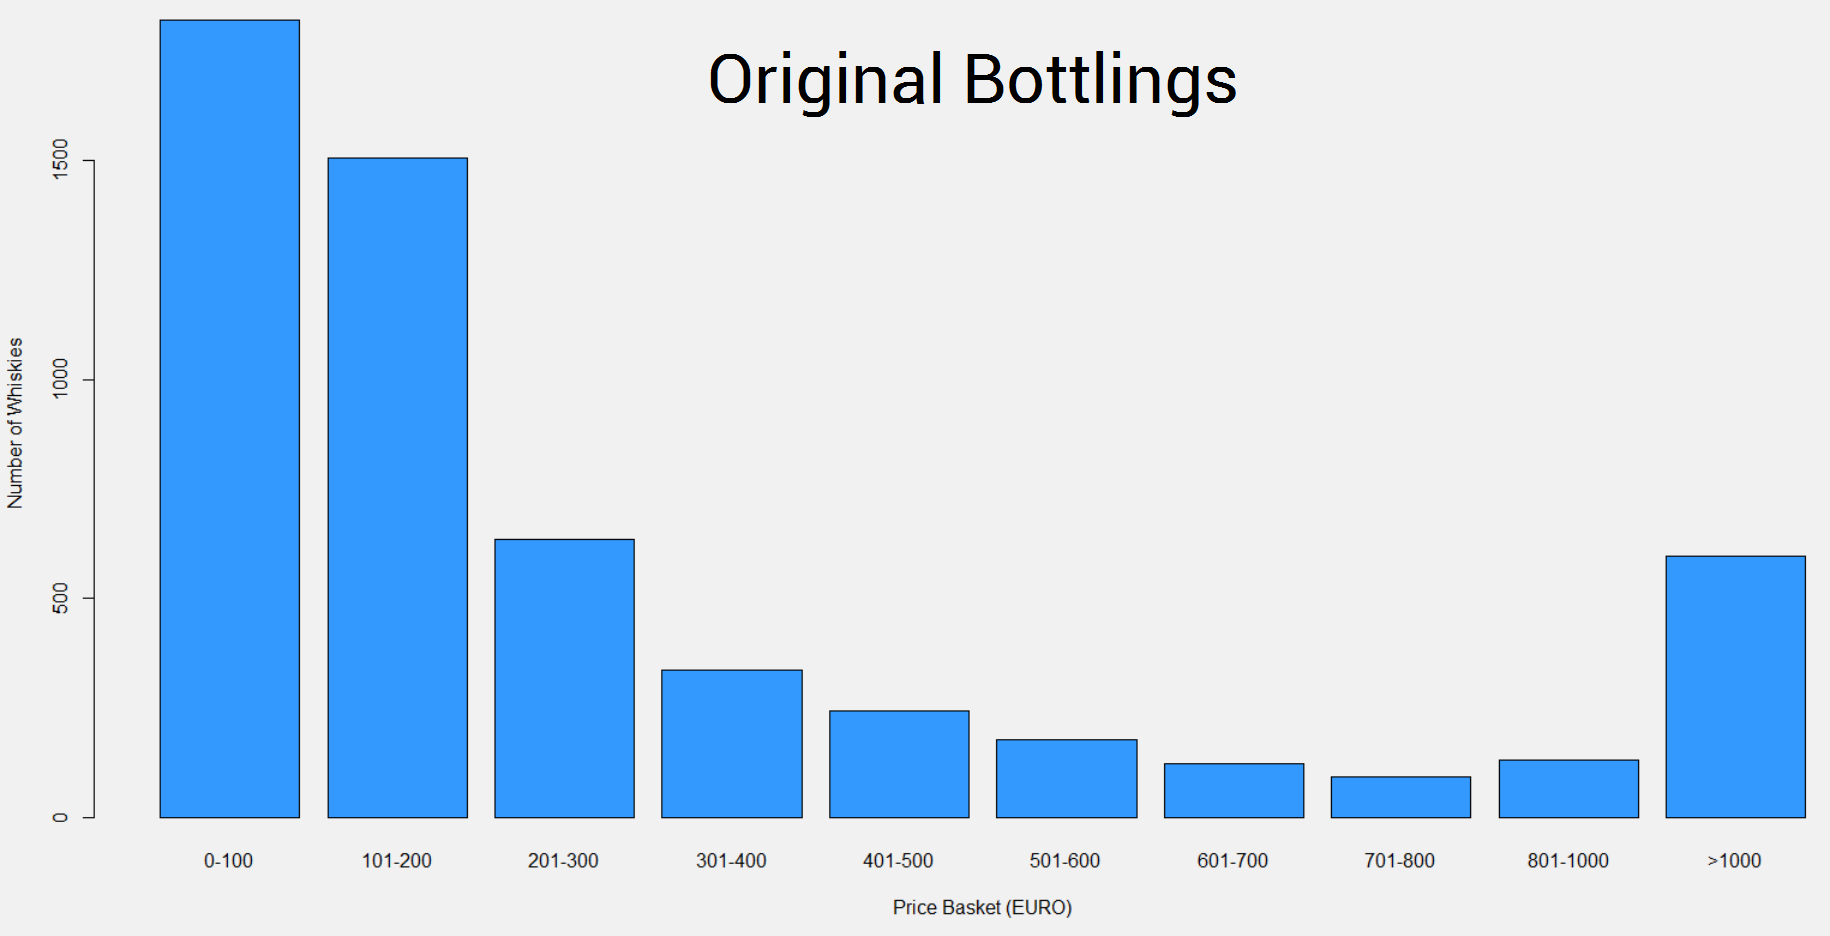 Price Summary for Original Bottlings